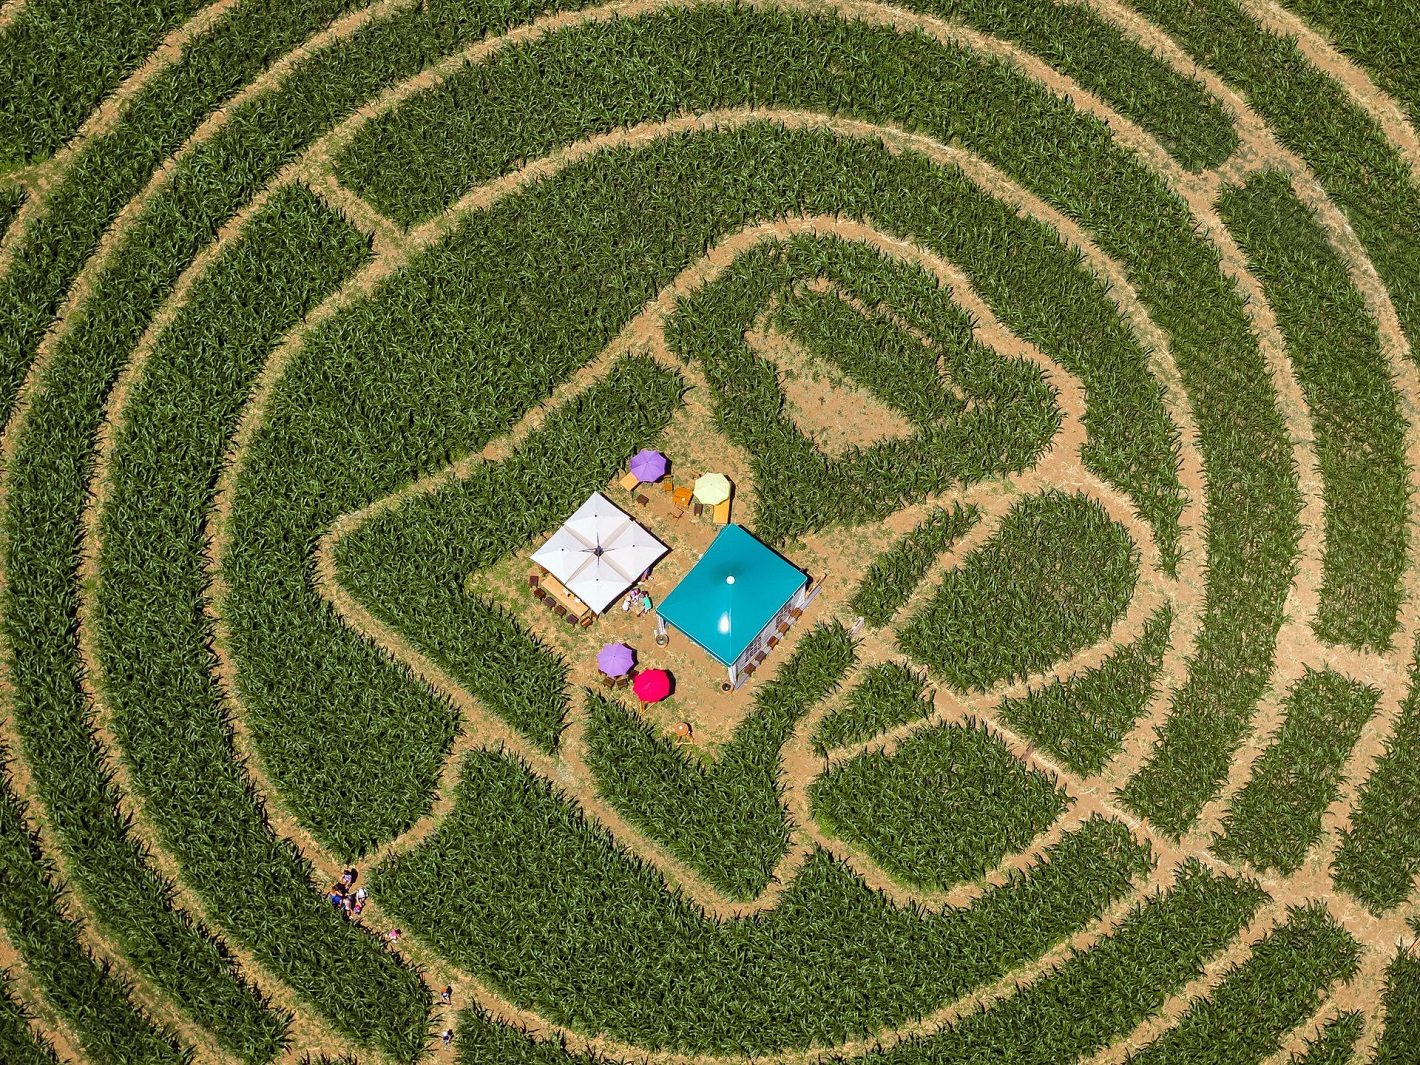 636662074185719569-EPA-epaselect-SWITZERLAND-CURIOSITIES-CORN-MAZE.jpg